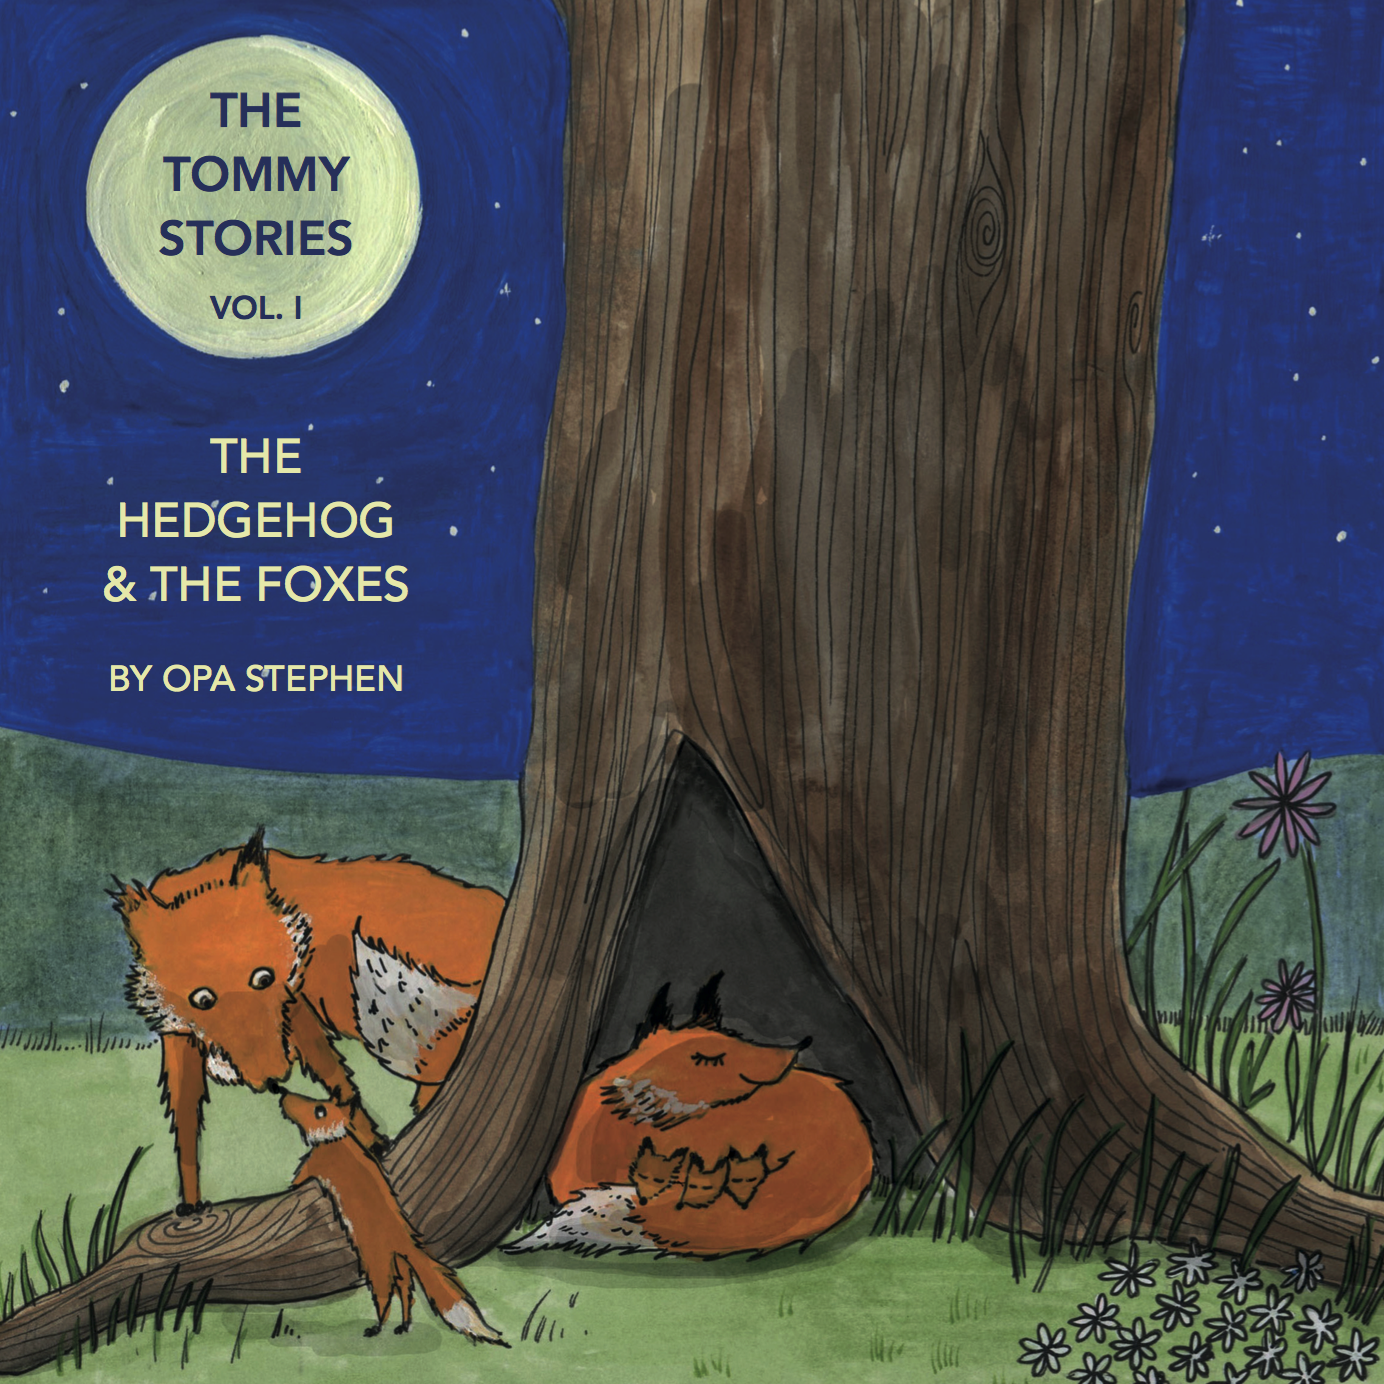 The Tommy Stories - The Hedgehog and the Foxes